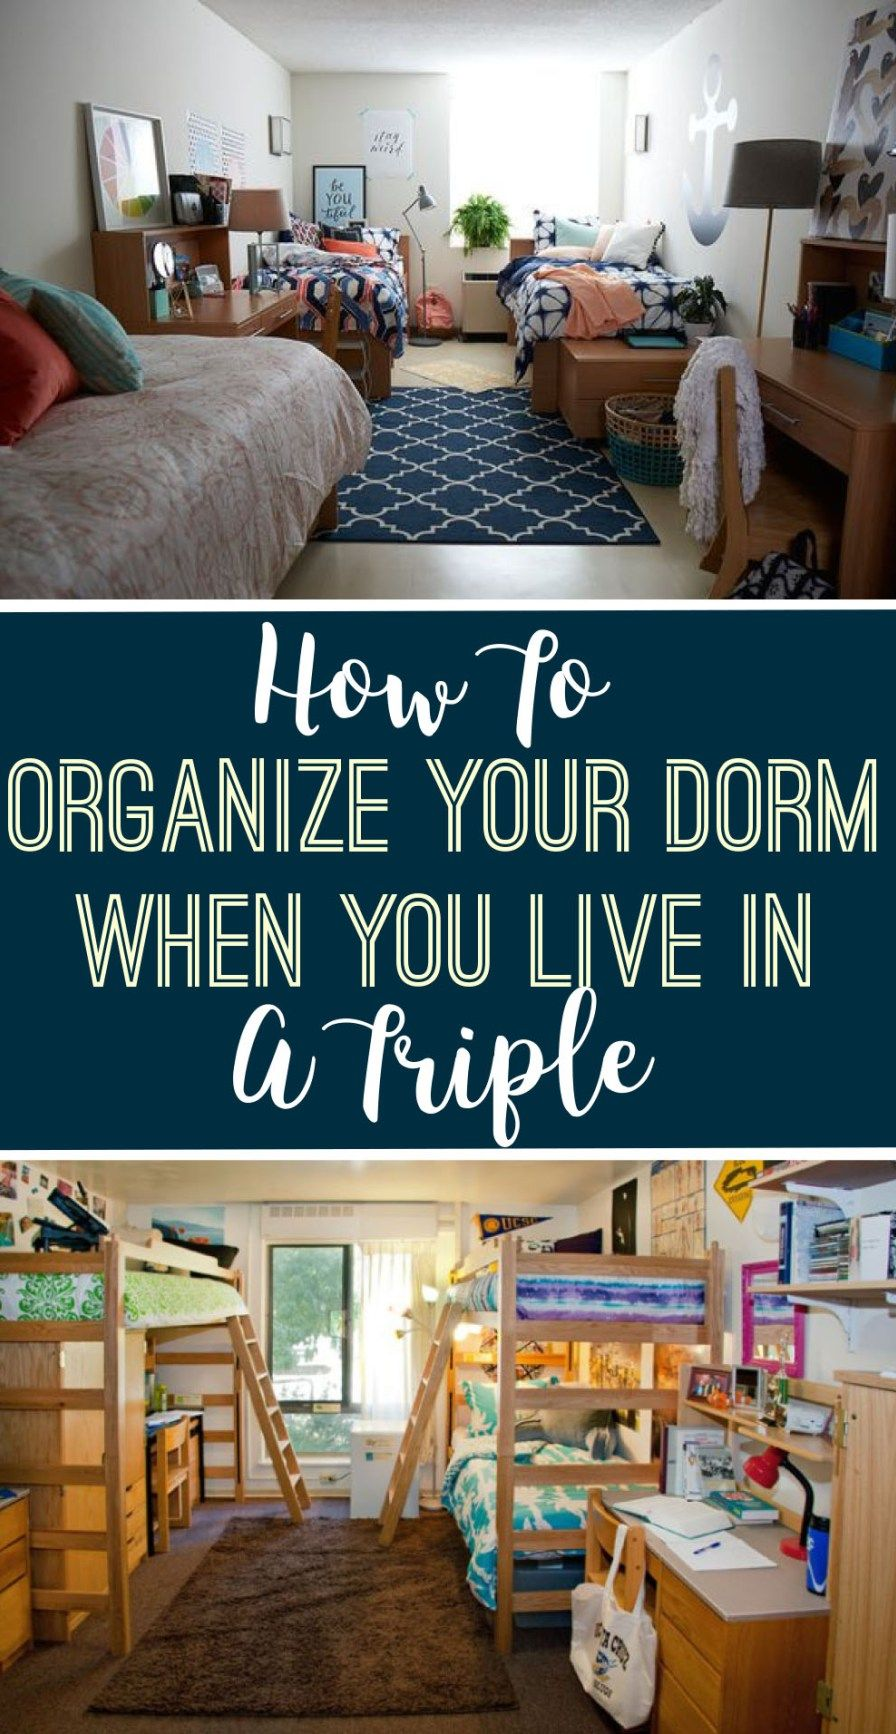 How To Organize Your Dorm When You Live In A Triple images